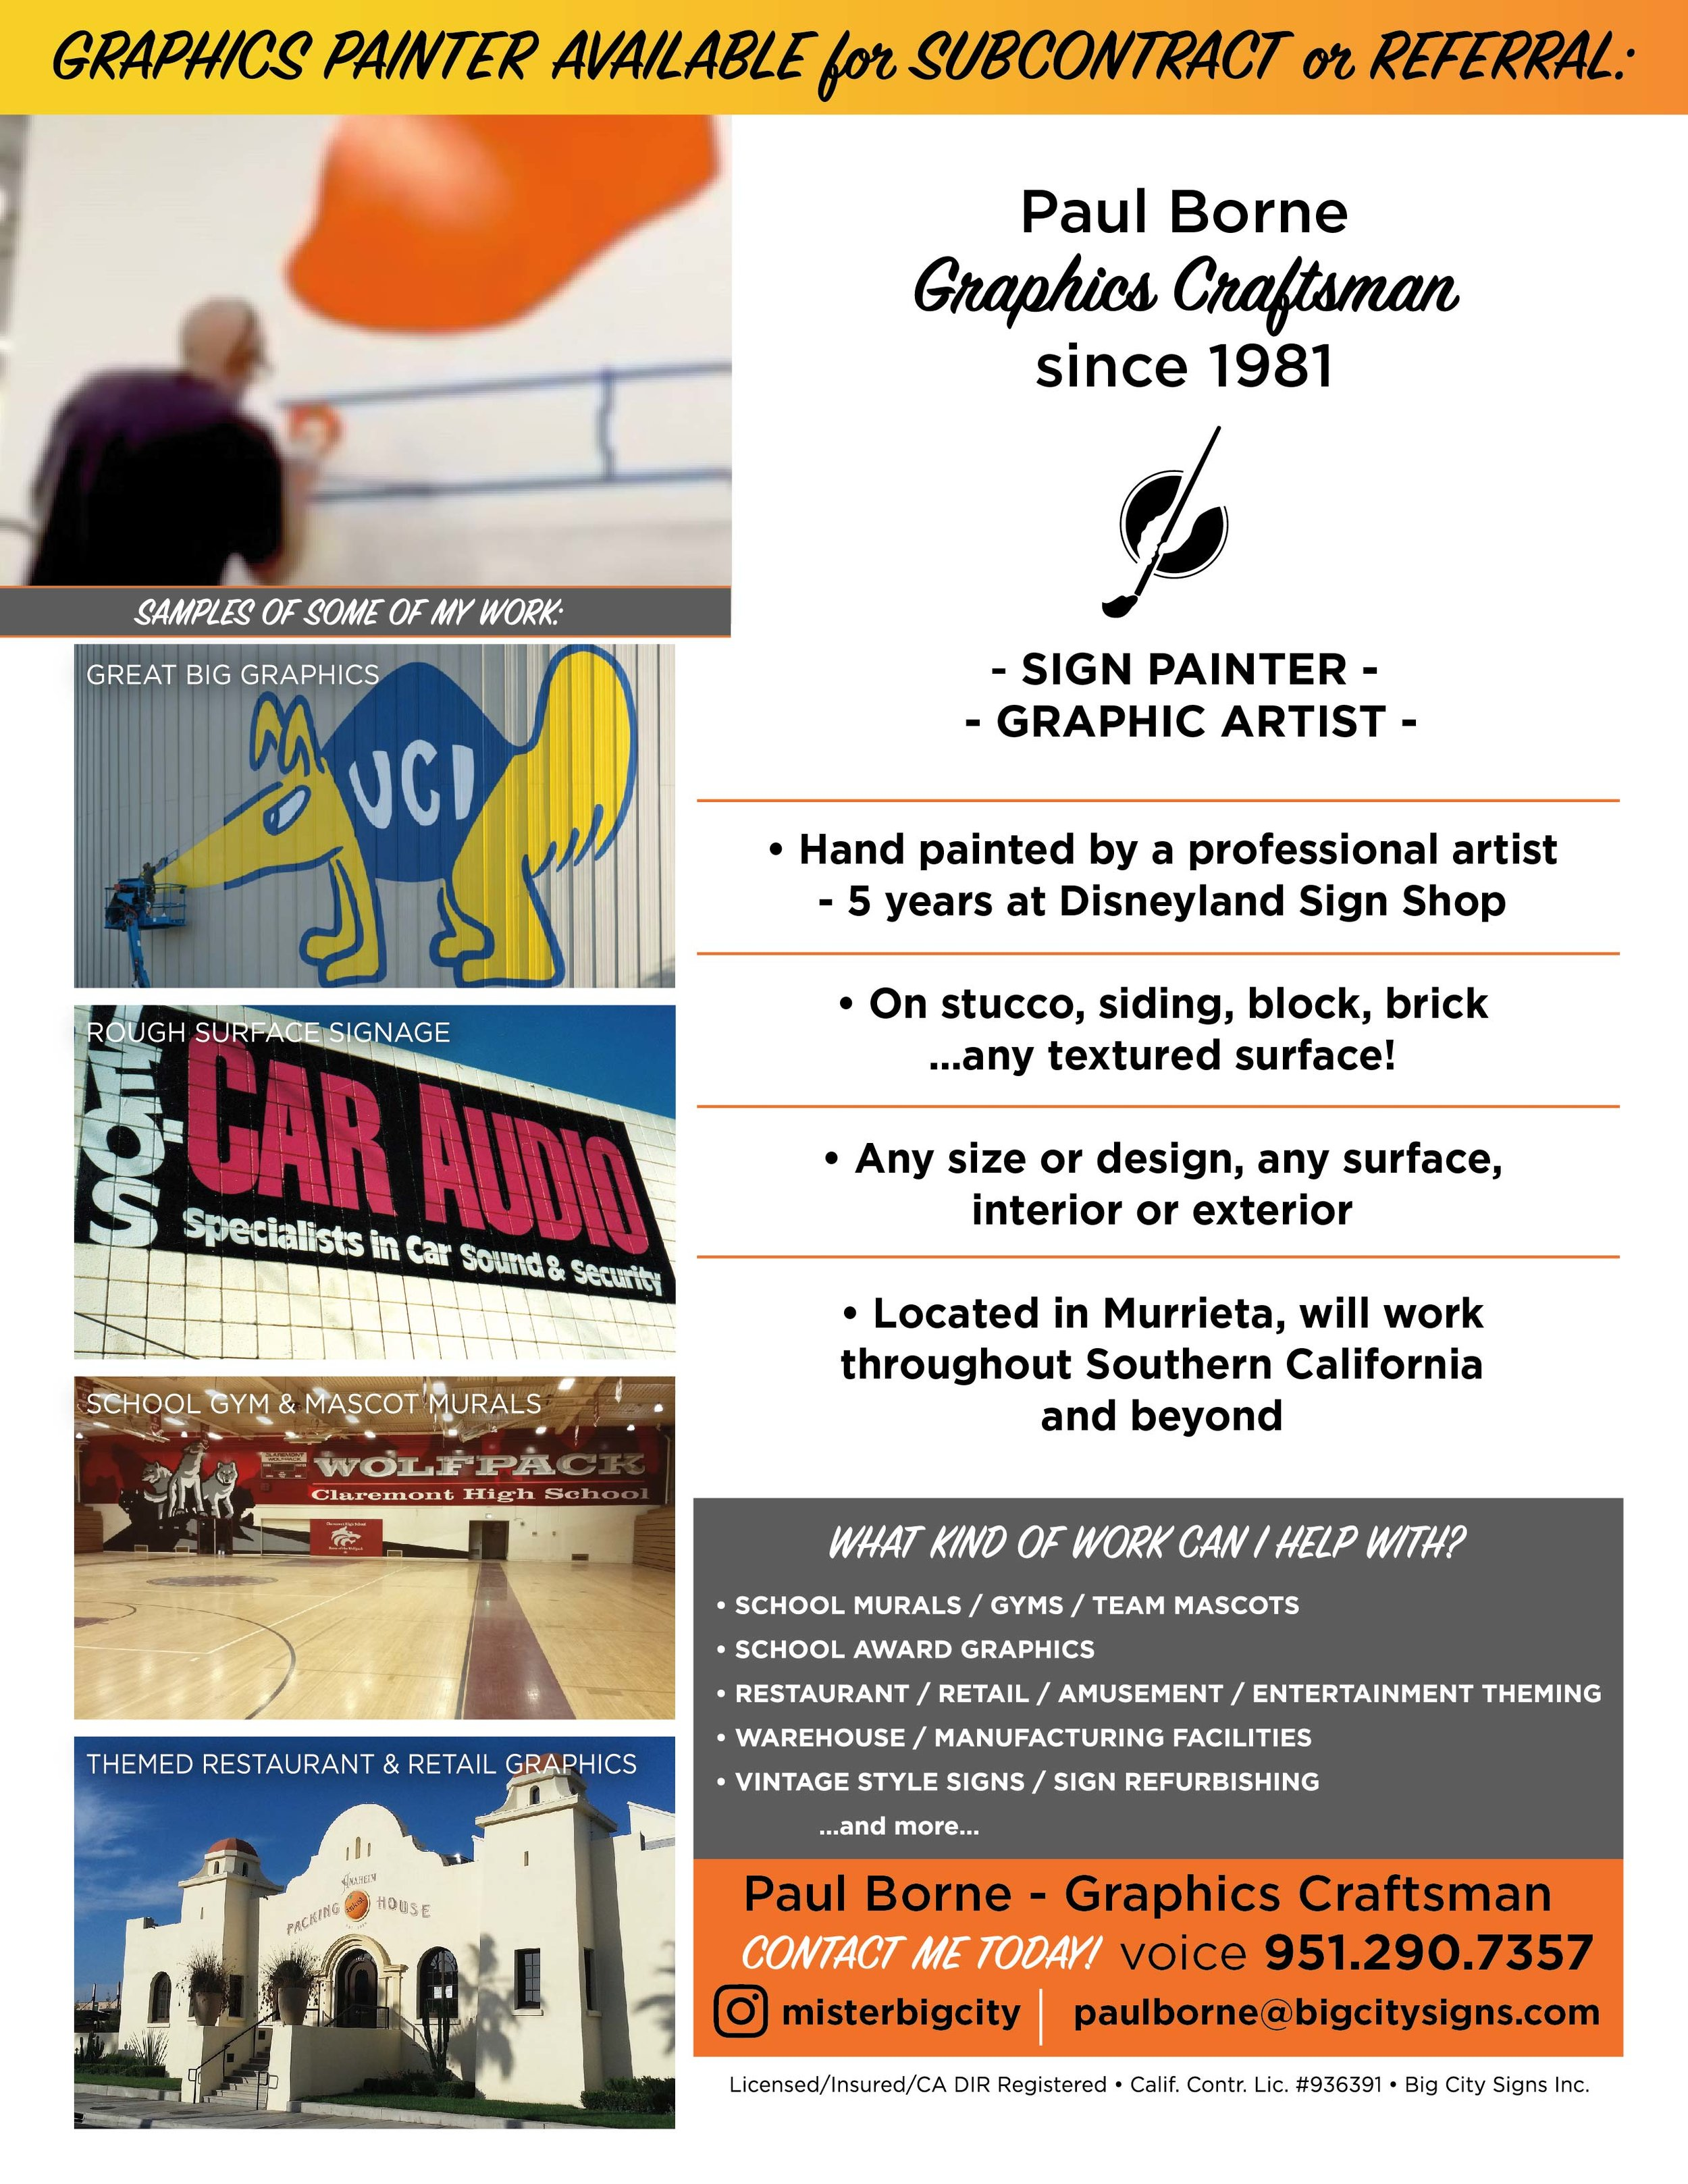 Your Sign Painter flyer - hand painted graphics, sign painter, graphic artist - San Diego, Orange County, Southern California and beyond